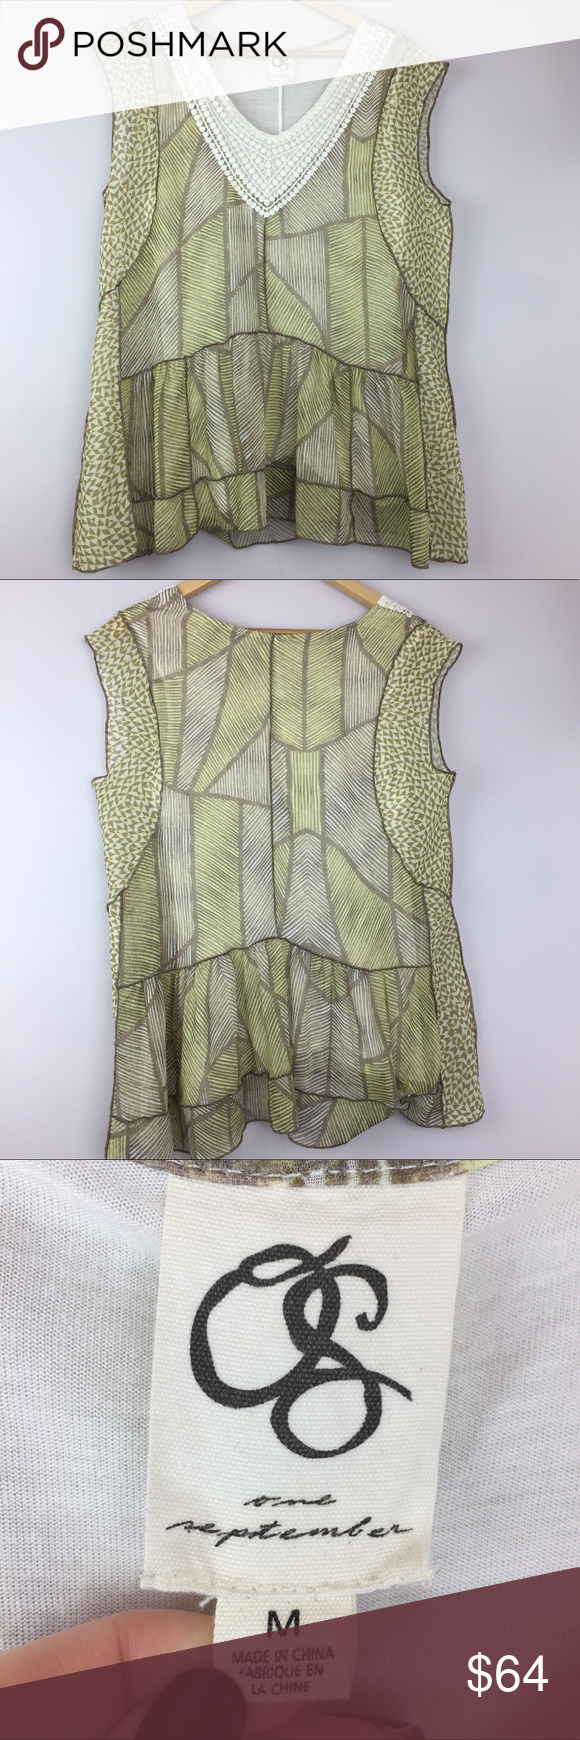 """Anthropologie One September Green Patterned Blouse •Anthropologie One September Sheer Green Sleeveless Blouse Top •Women's Size Medium •In excellent used condition •White crochet neckline •Green patterned sheer material overlaying white tank top •Body: 100% polyester / lining: 100% rayon / trim: 100% cotton •All measurements are approximate: 27"""" length, 20"""" armpit to armpit of outer layer Anthropologie Tops Blouses"""